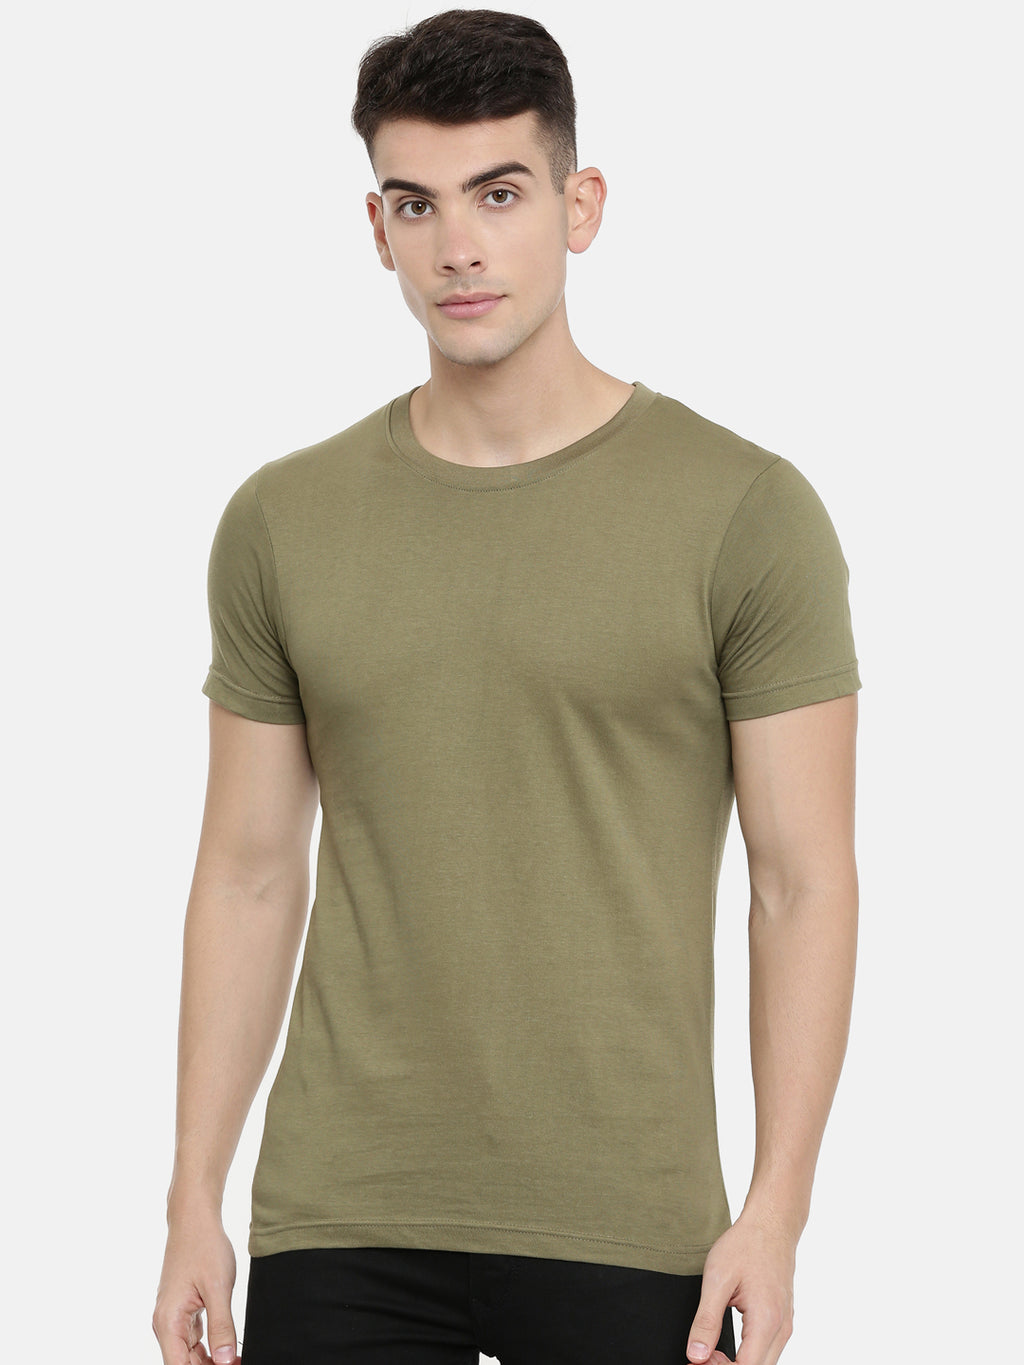 Olive green Round Neck Half Sleeve T-shirt Baromin